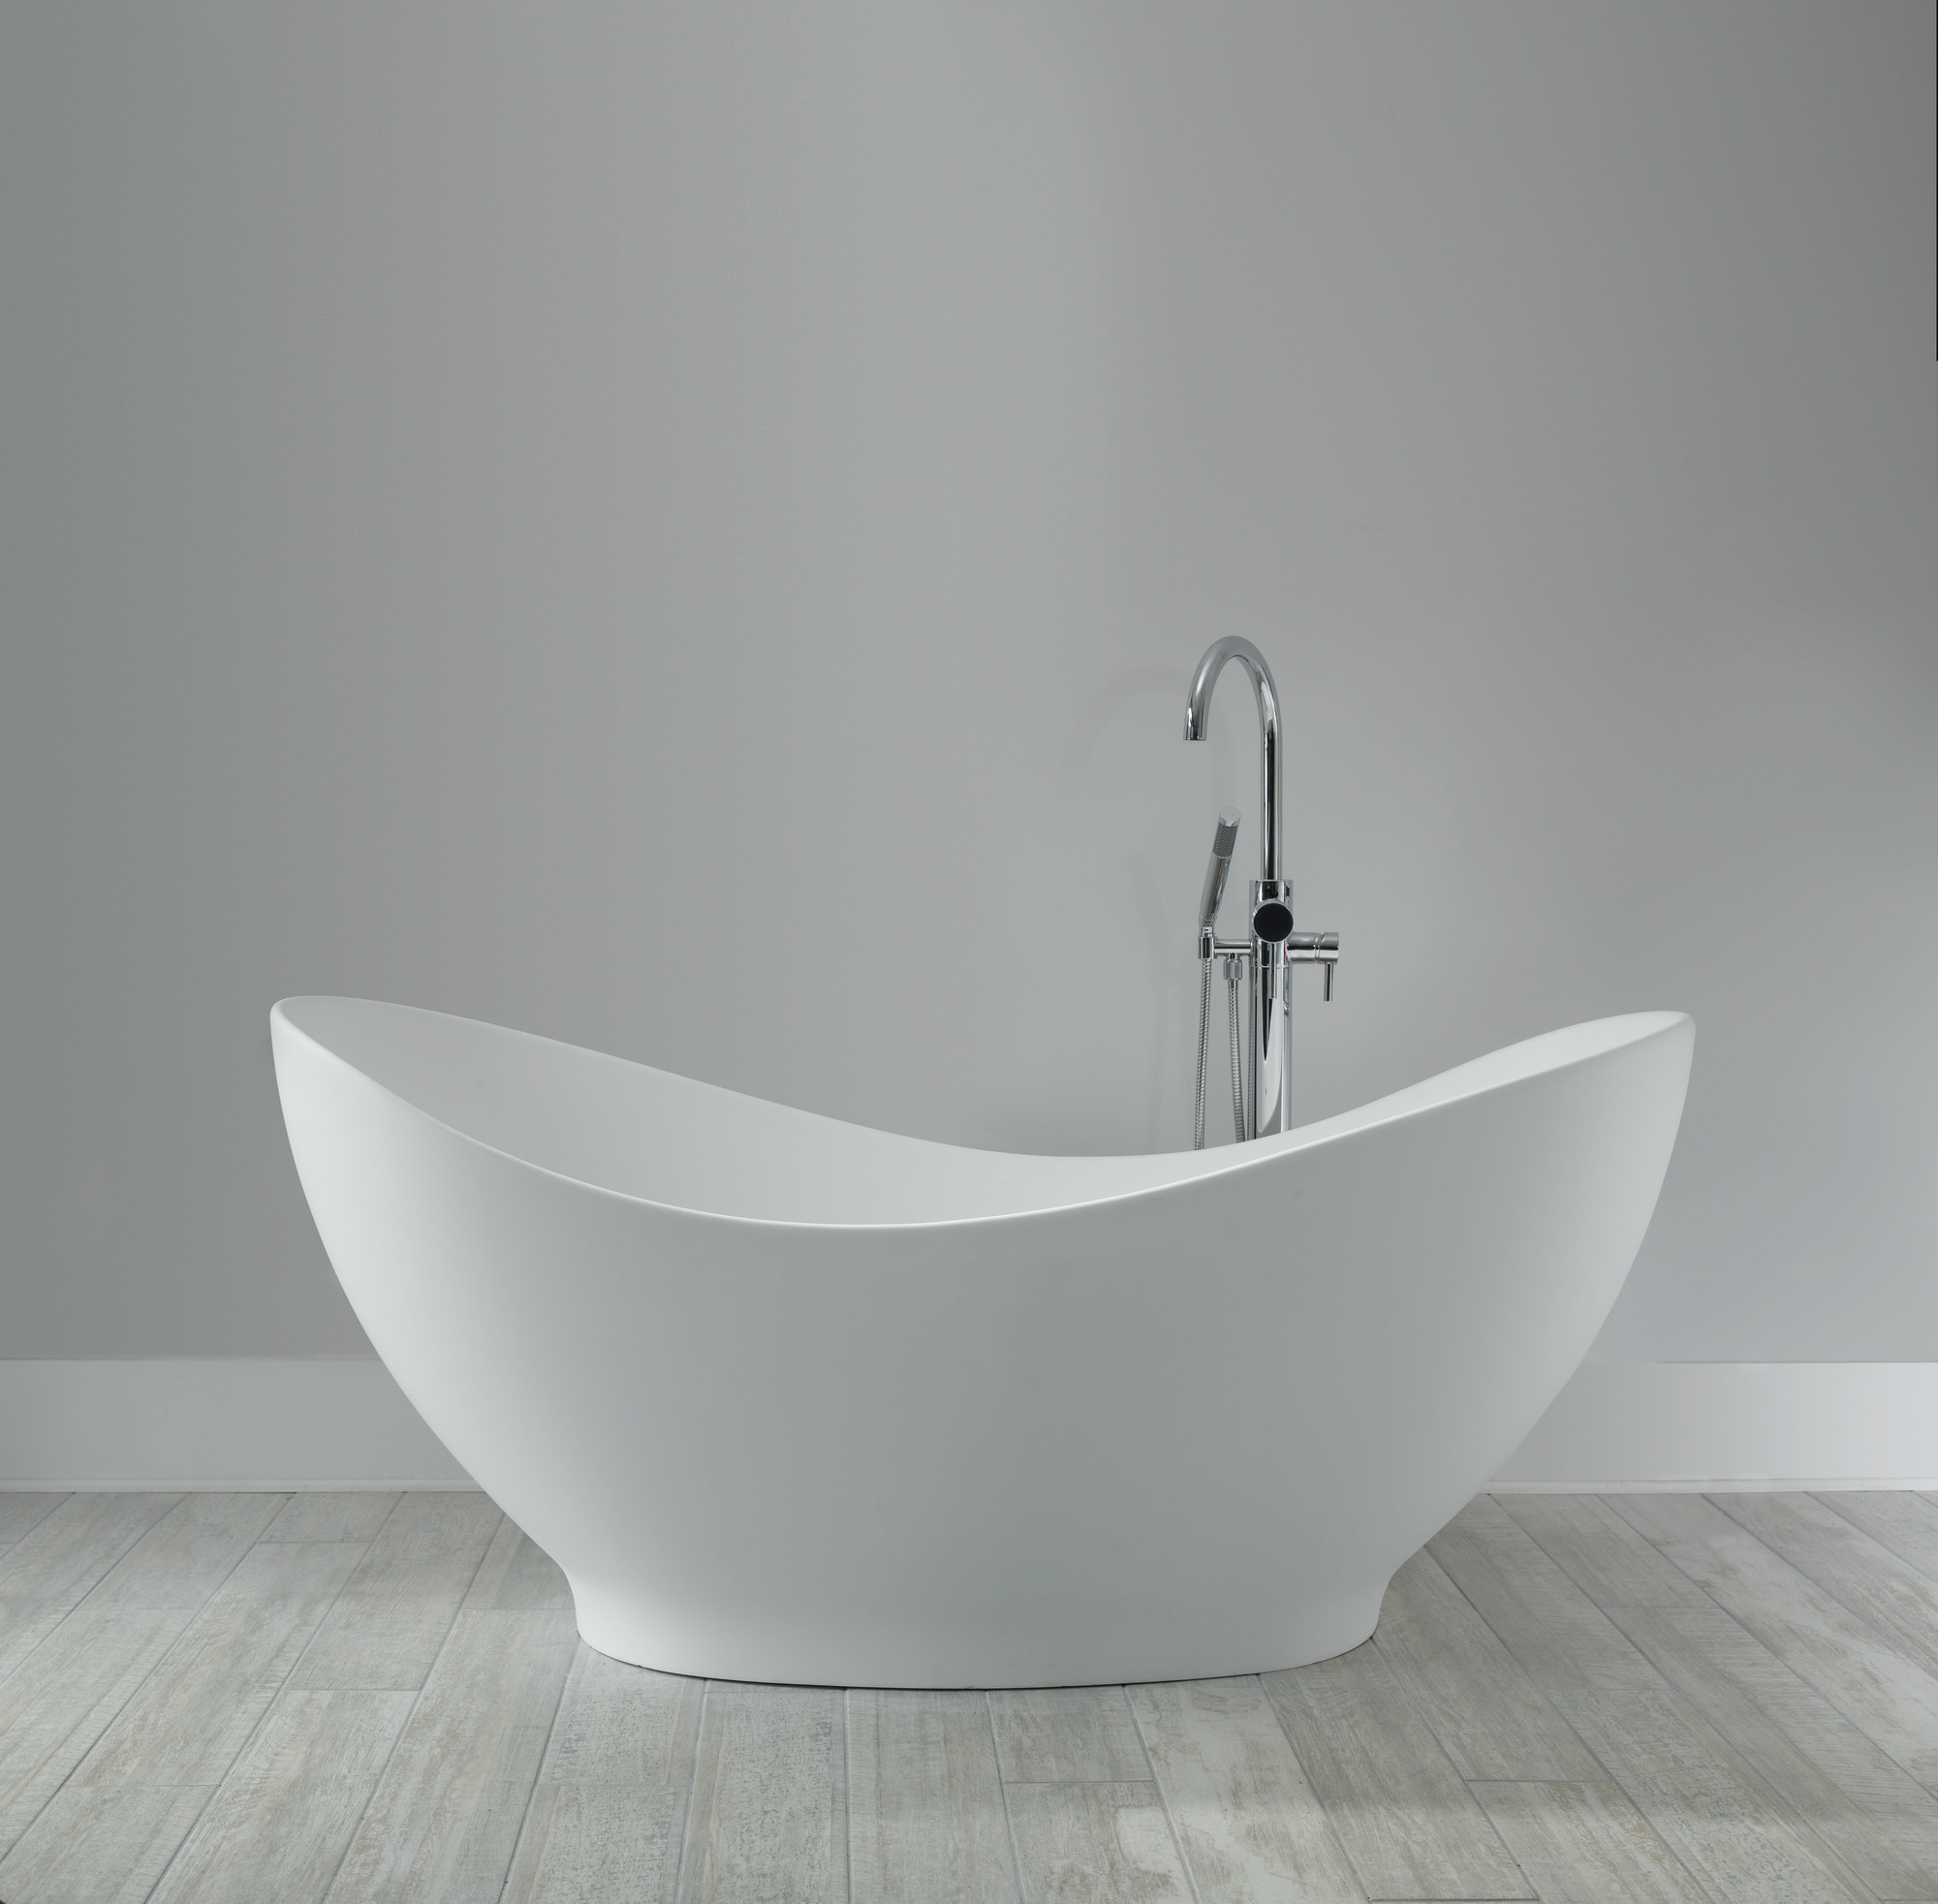 Island tub drain acri tec bath and kitchen products - 2017 Product Guide Water